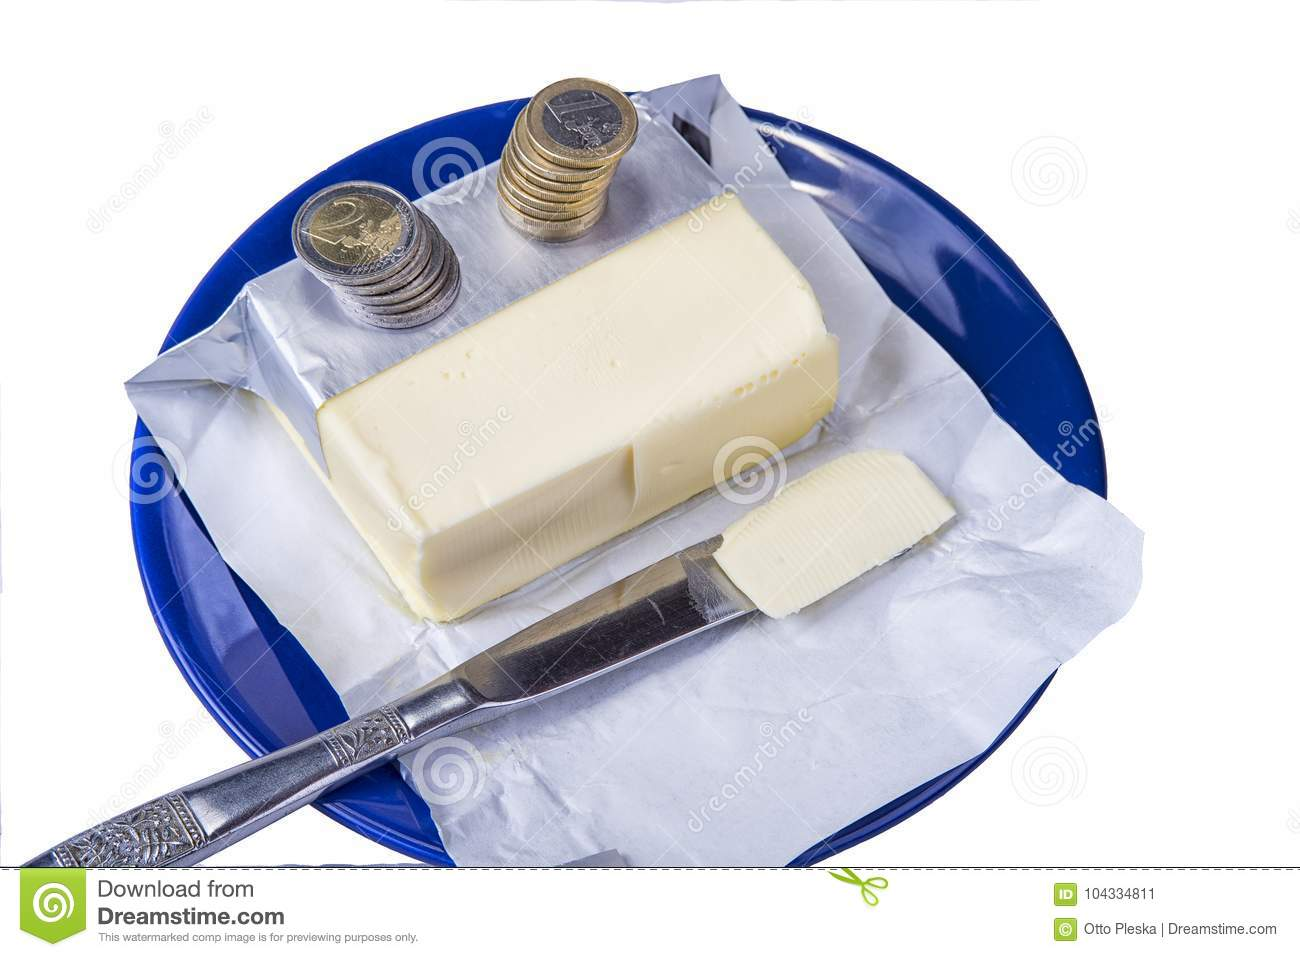 Butter on the blue plate with euro coins money on white